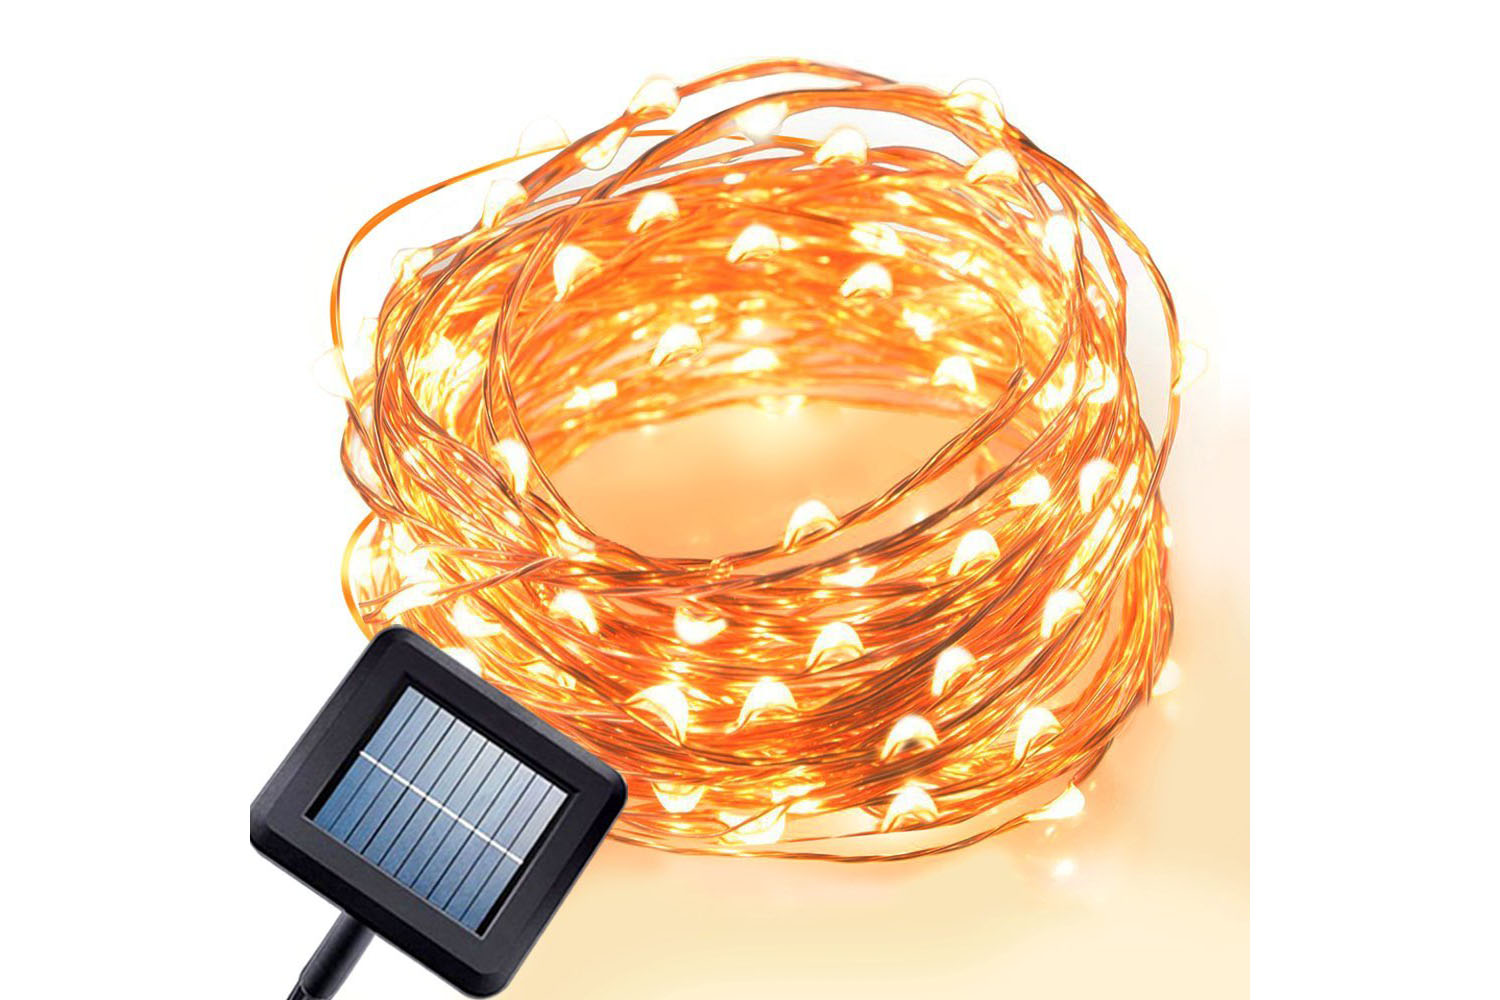 Solar Powered 100 LEDs, 33 Ft - 4.5 stars - $13 (Prime)